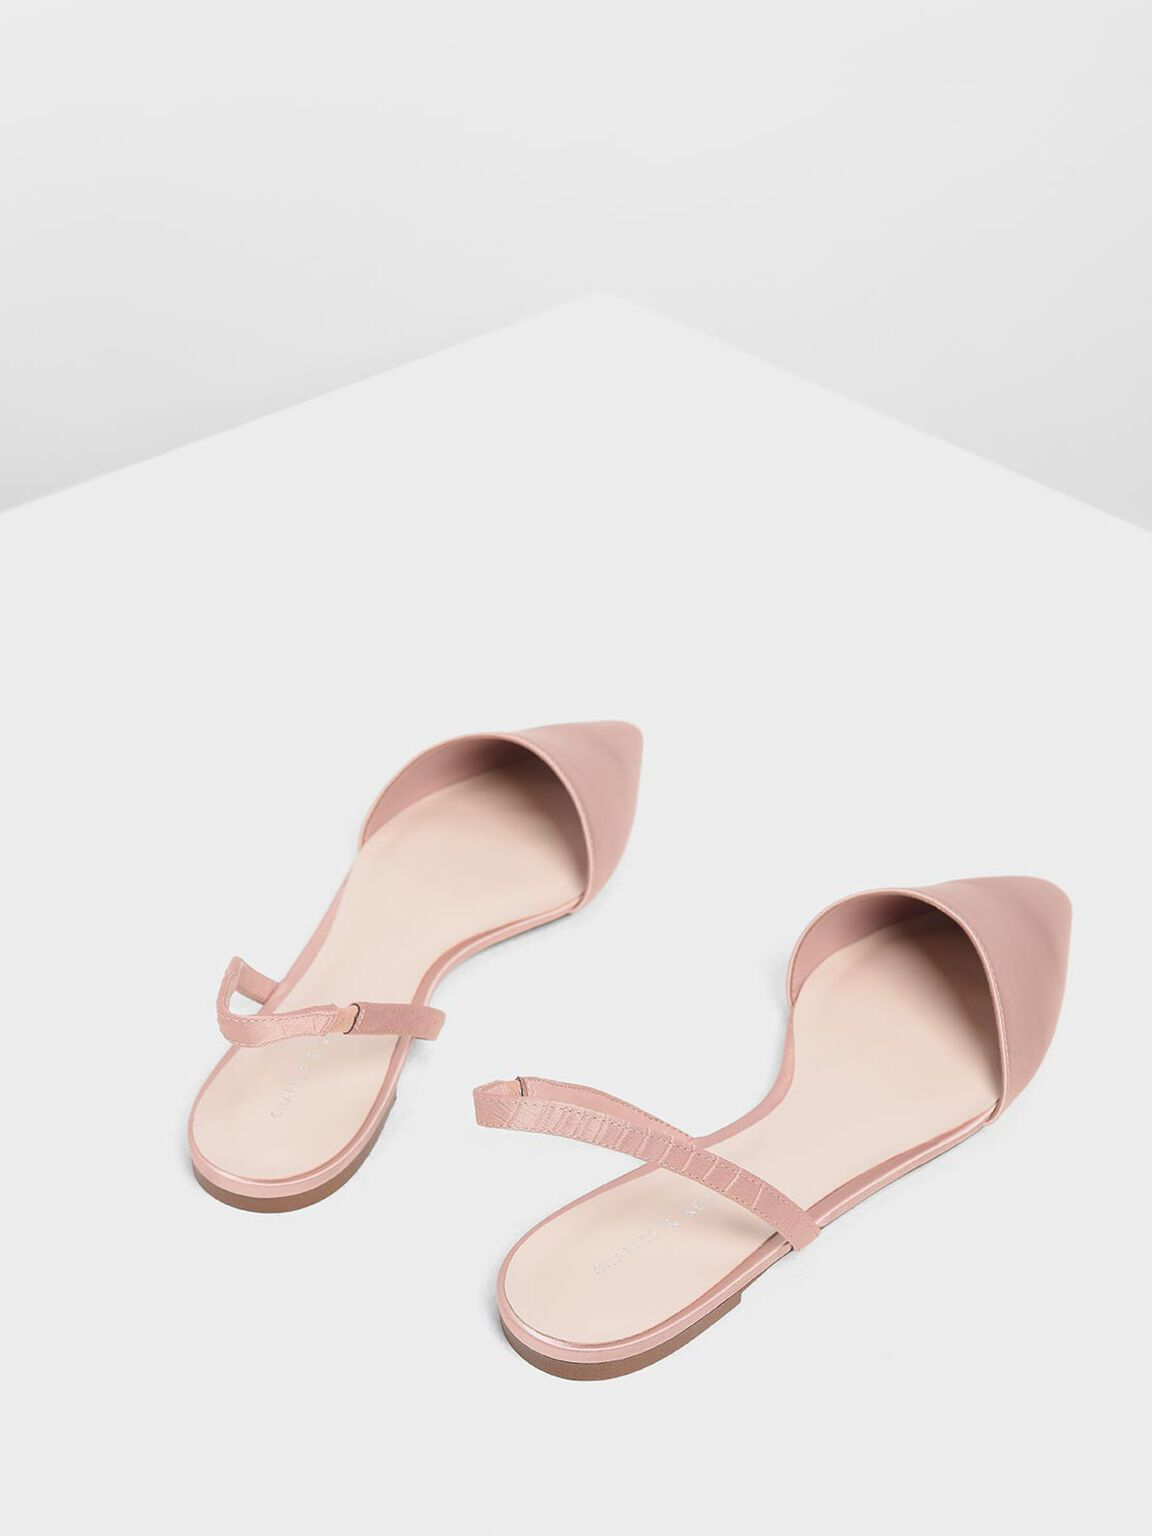 Satin Pointed Toe Slingback Flats, Nude, hi-res